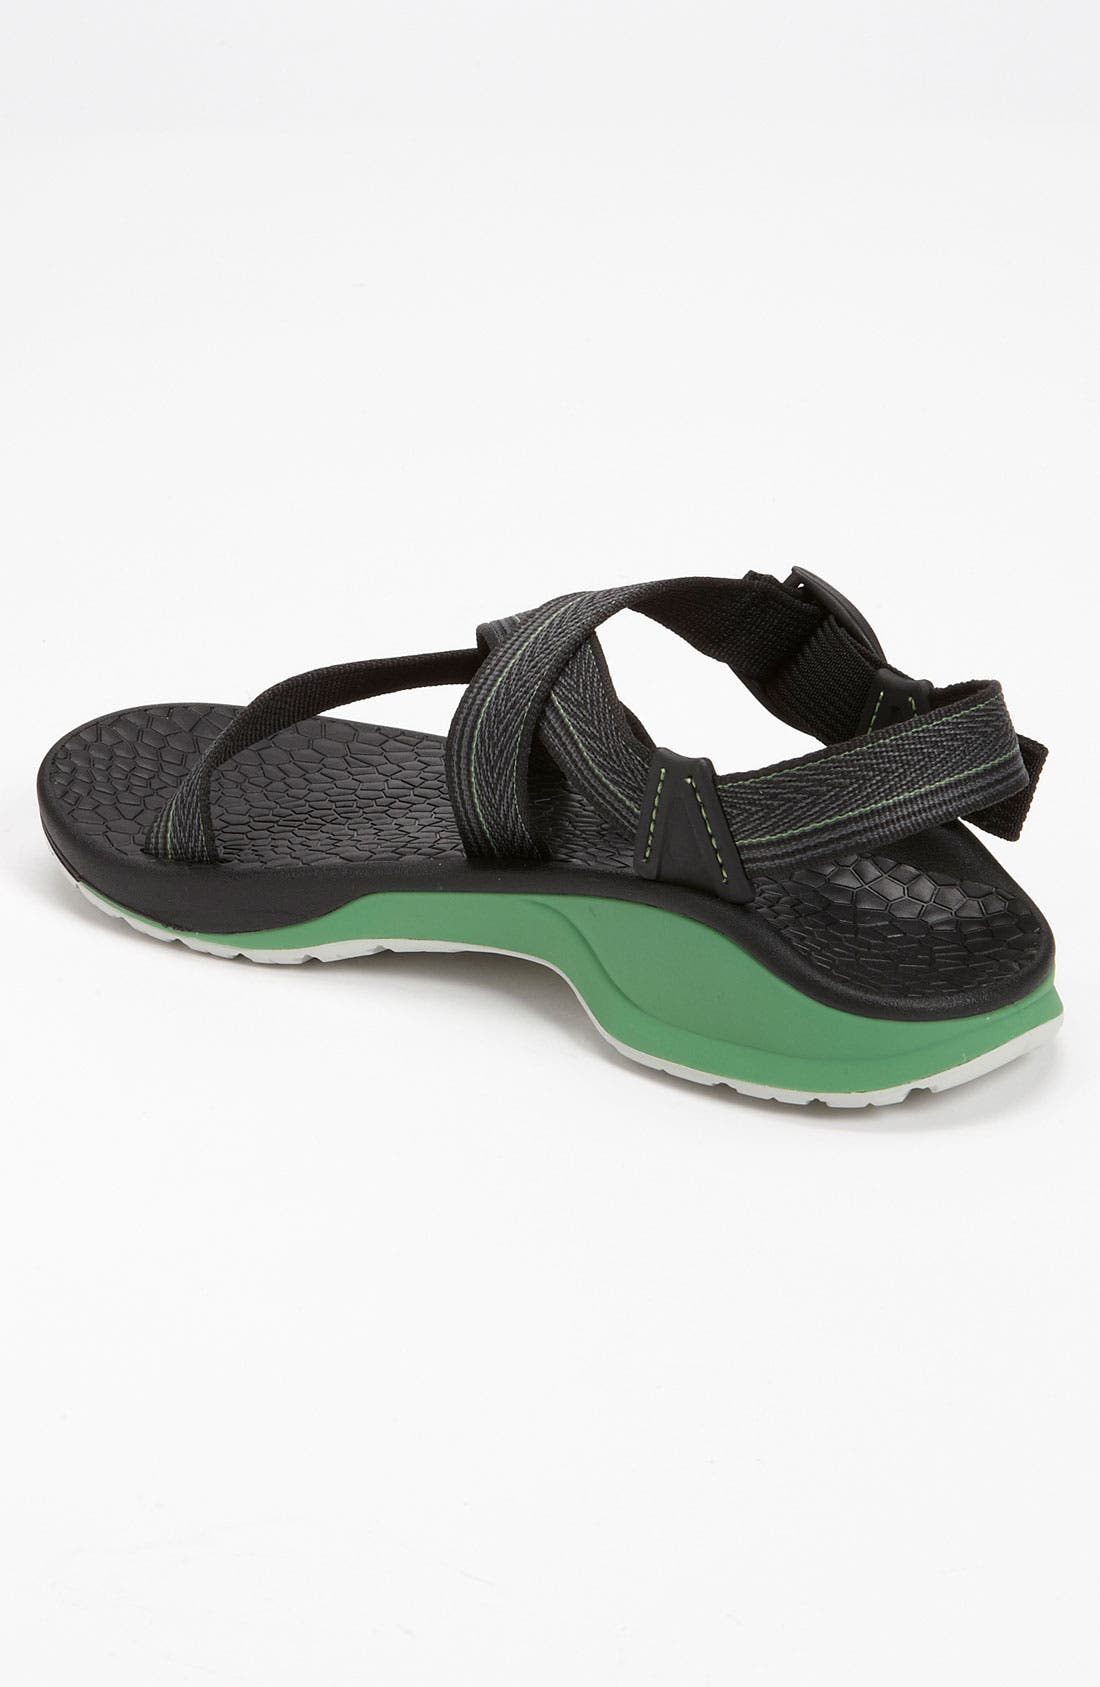 Alternate Image 2  - Chaco 'Updraft' Sandal